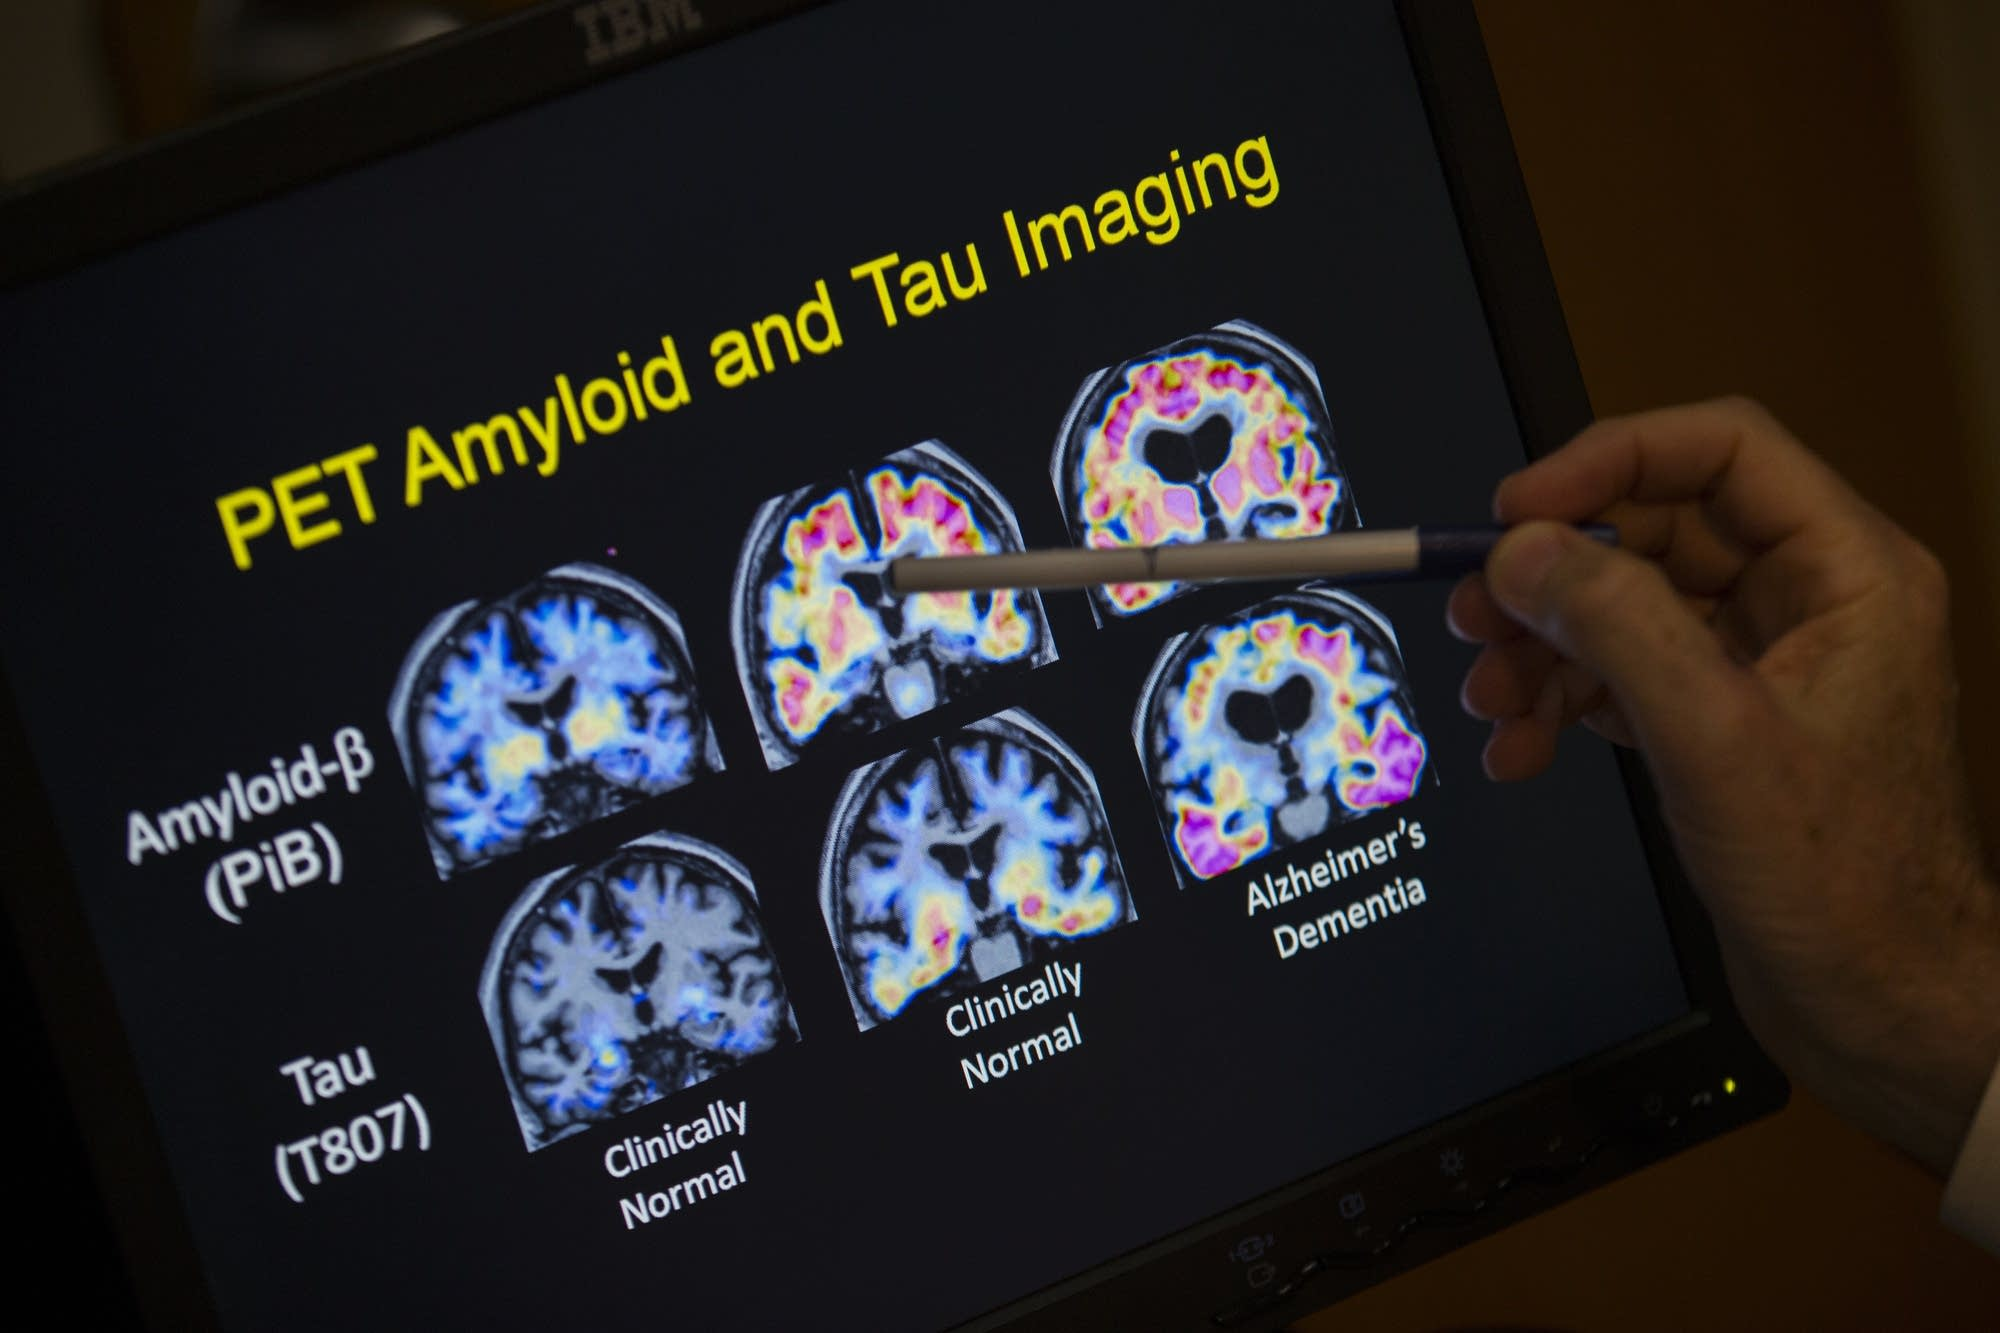 PET scan results that are part of a study on Alzheimer's disease.